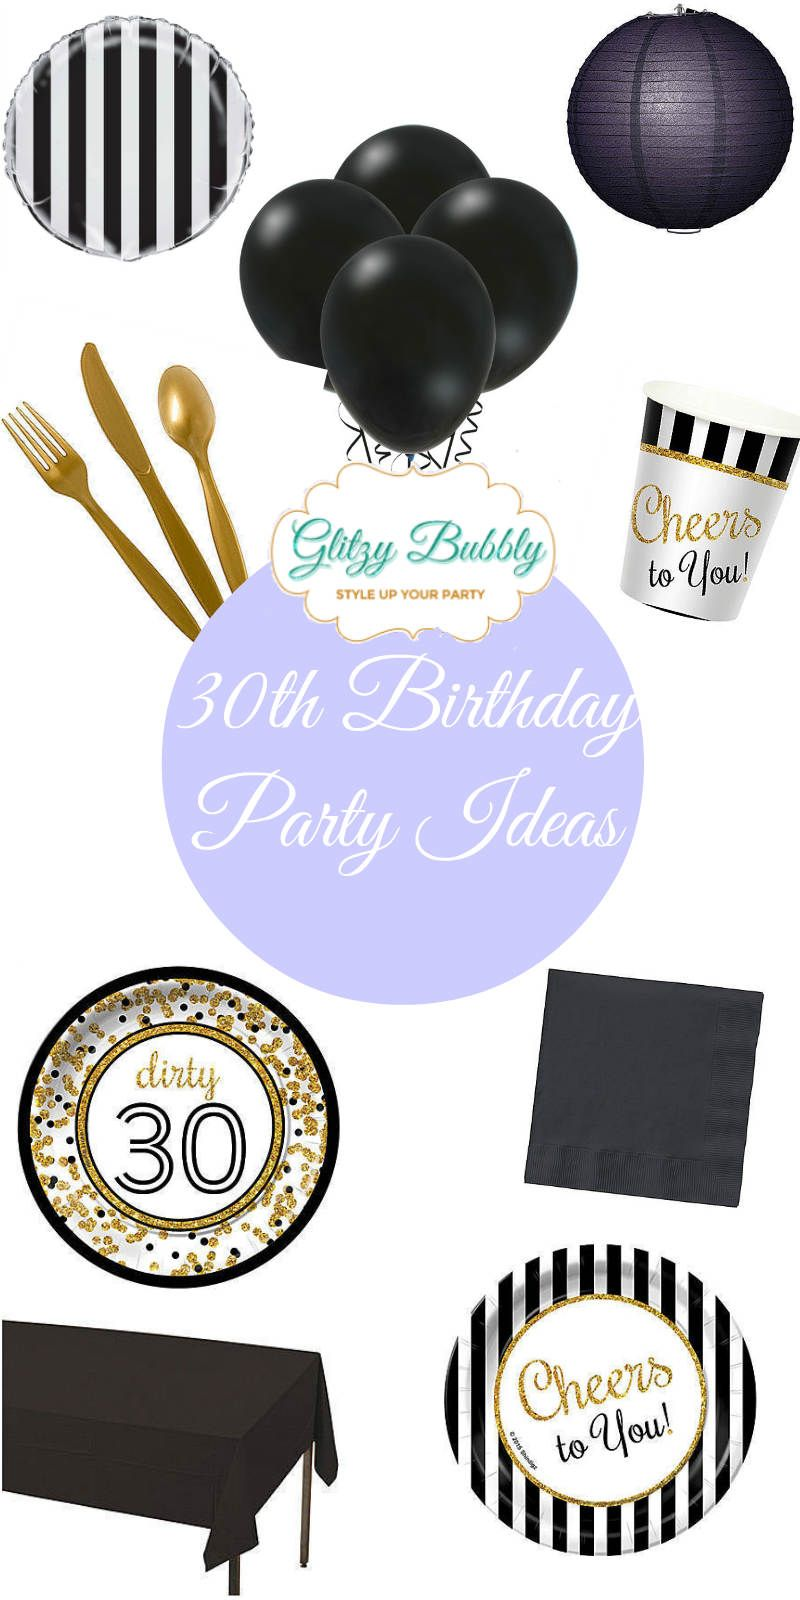 Plan your Dirty 30s celebration in style with gold and black party supplies at www.glitzybubbly.com